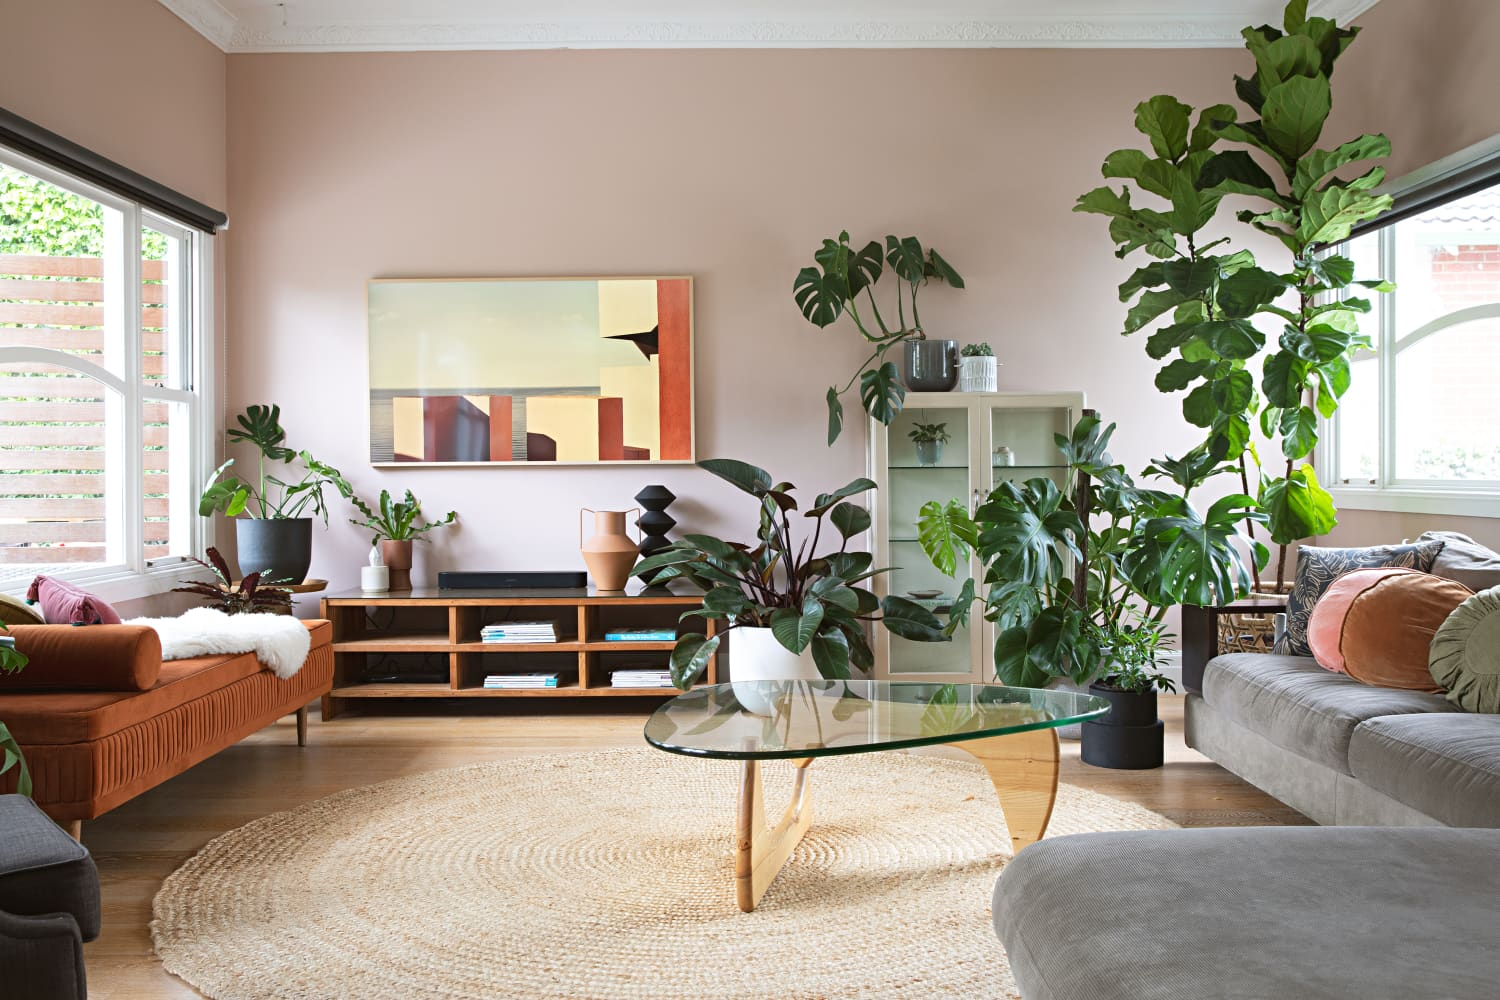 6 Lessons from Design Experts on How to Make Your Home Happier and Healthier